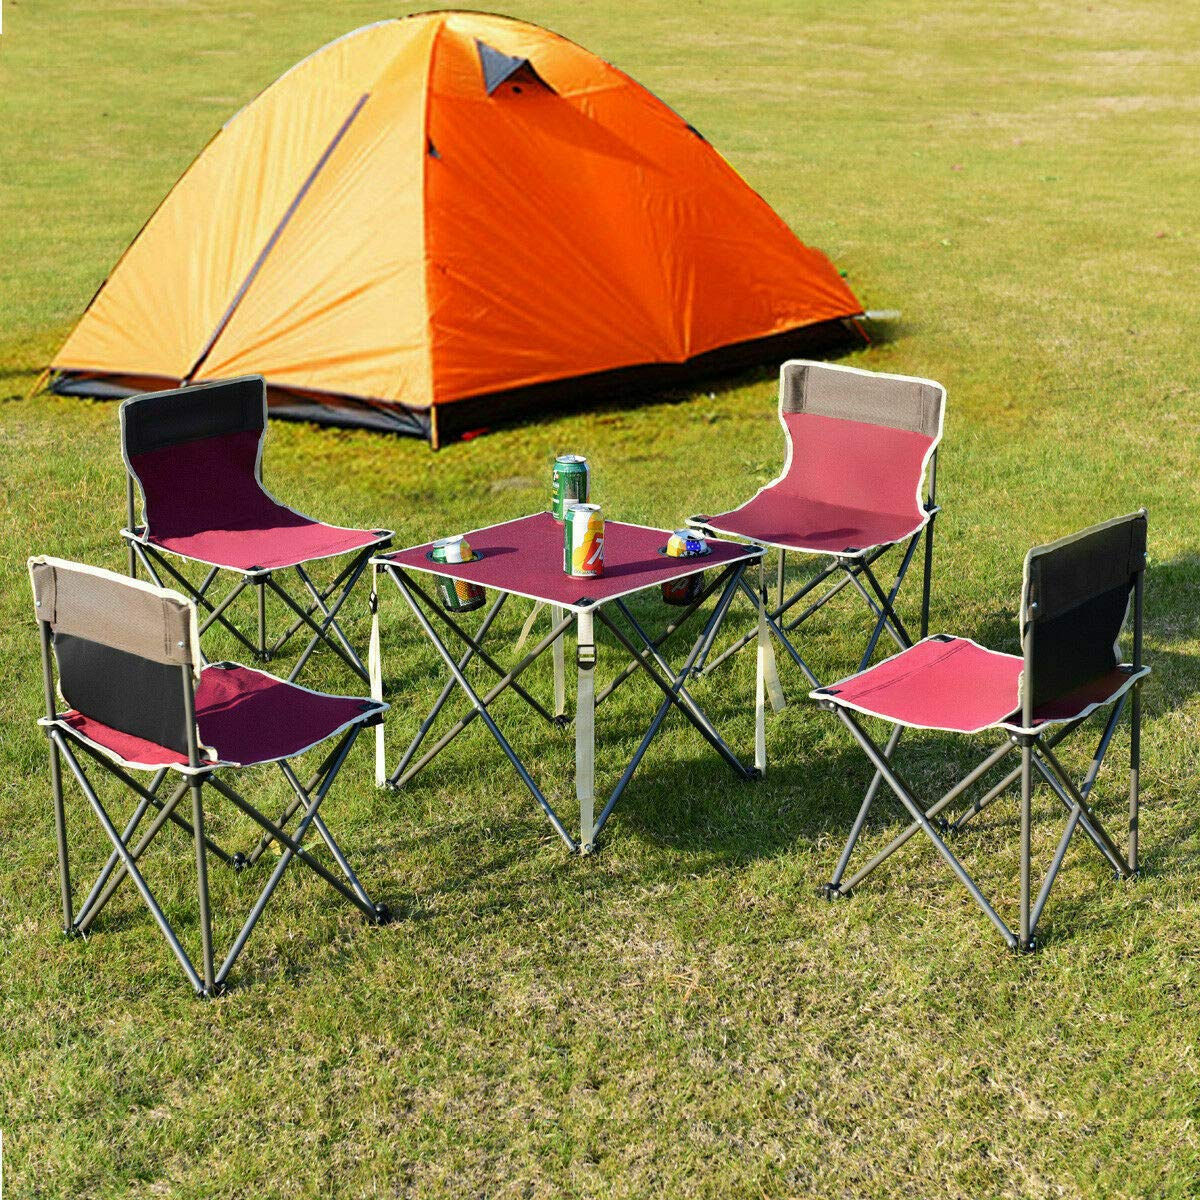 ANA Store Vacations Cookout Party Curl Stand Metal Iron Stell Frame Red Oxford Fabric Portable Folding Table Chairs Set Inside Outside Camp Beach Picnic with Carrying Bag by ANA Store (Image #3)